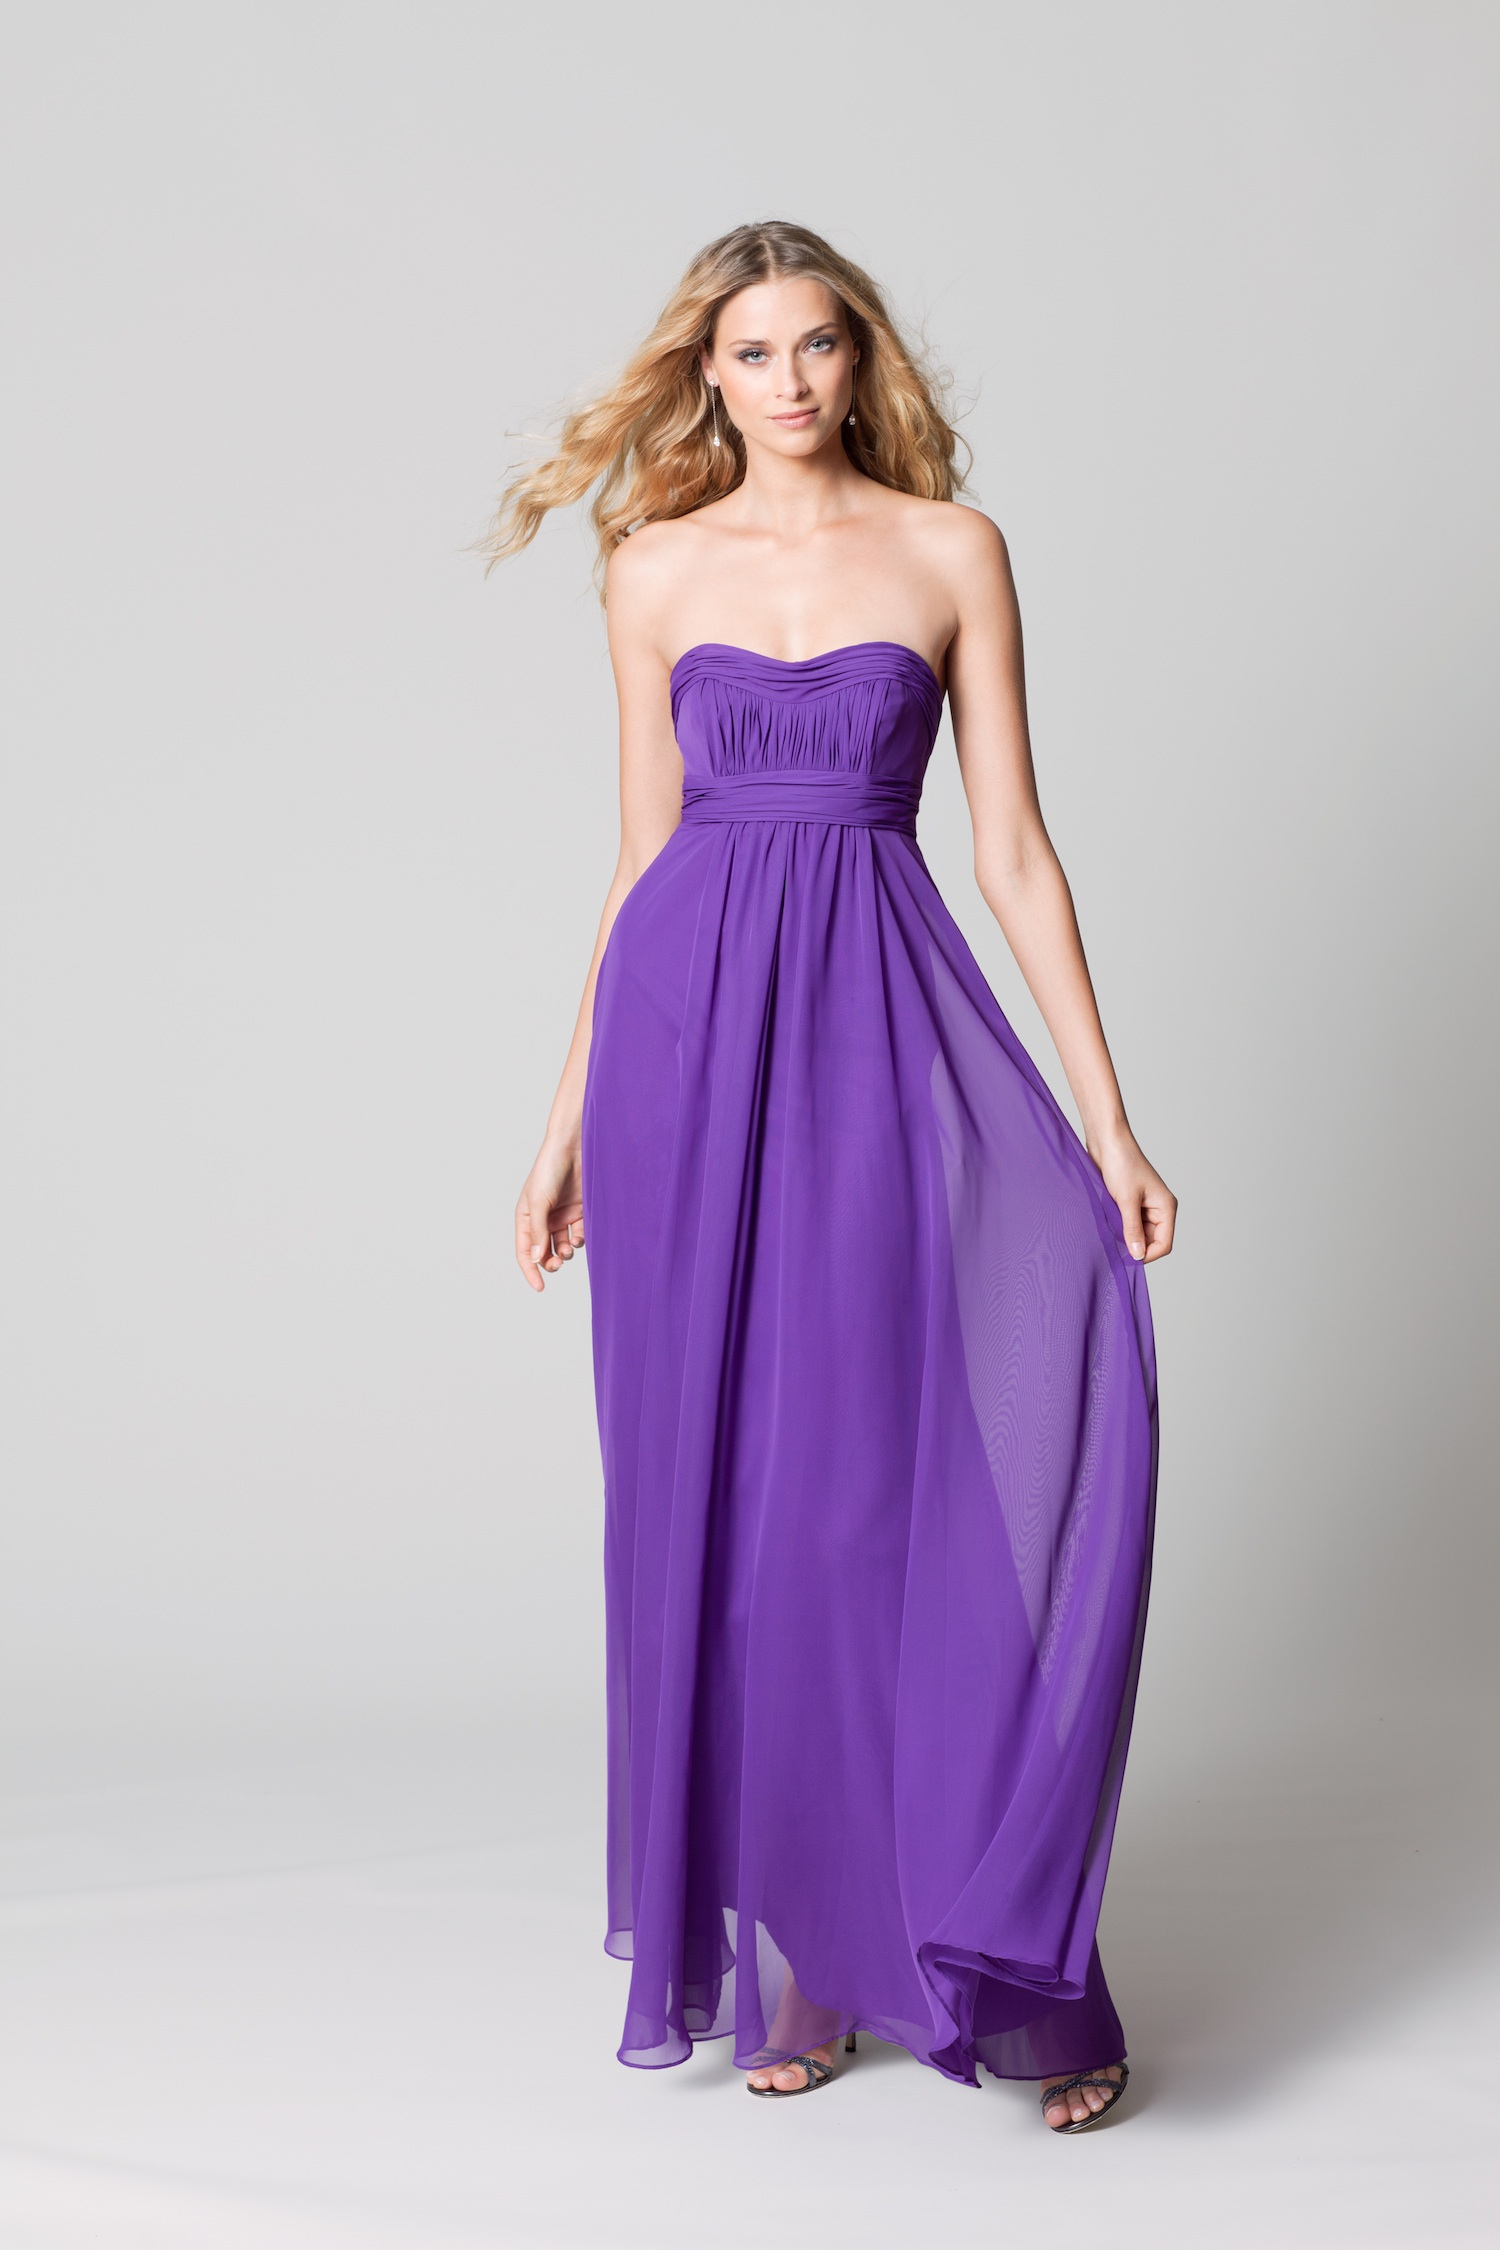 Affordable bridesmaids dresses fall 2012 wtoo by watters for Cheap wedding and bridesmaid dresses